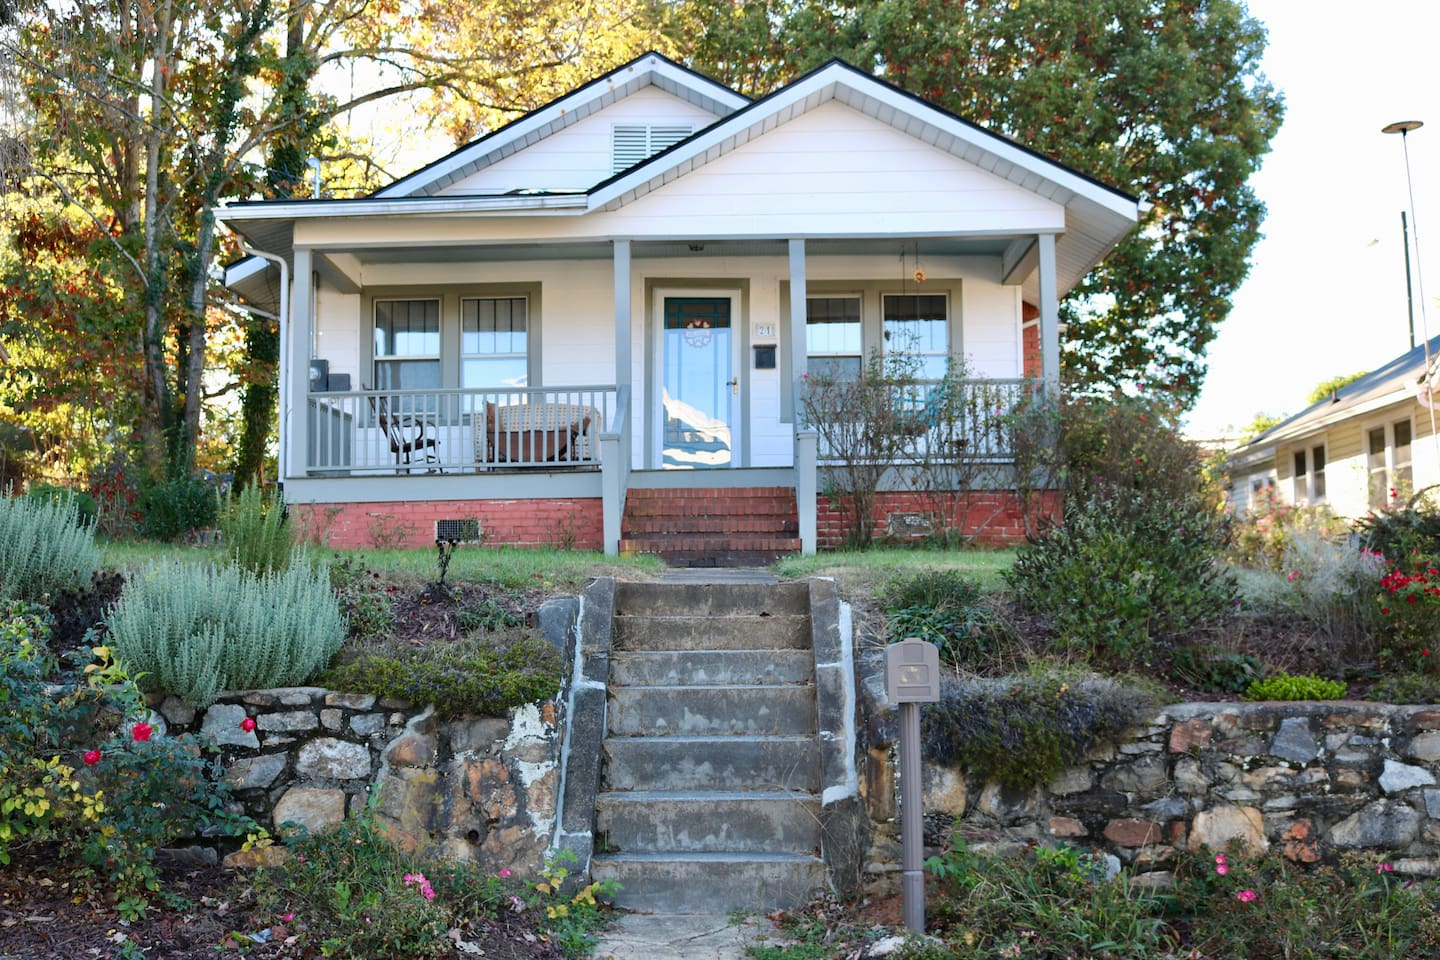 Outstanding West Asheville bungalow one block away from Haywood Rd (including Sunny Point, Standard Pizza, Oyster Brew House, Itto Ramon and Ingles Grocery Store).